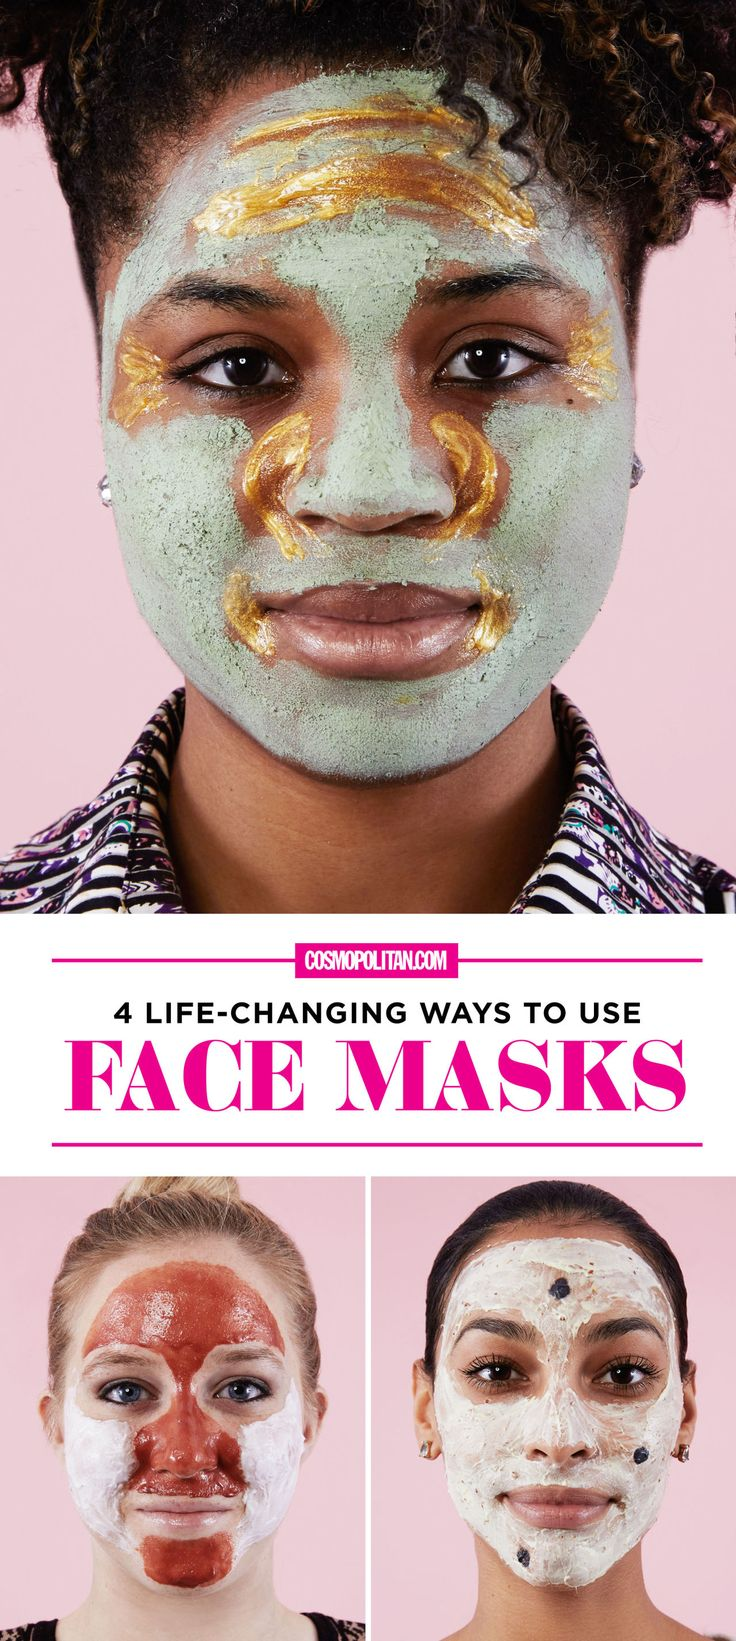 FACE MASK COMBINATIONS: You don't have to use just one face mask at a time, you can use these combinations to address all your skin problems at once! Click through for face mask tutorials that address breakouts and irritation, oily skin and large pores, dullness and fine lines, and an oily t-zone and dry cheeks. Find all the instructions and expert tips from Cosmo's beauty director here!